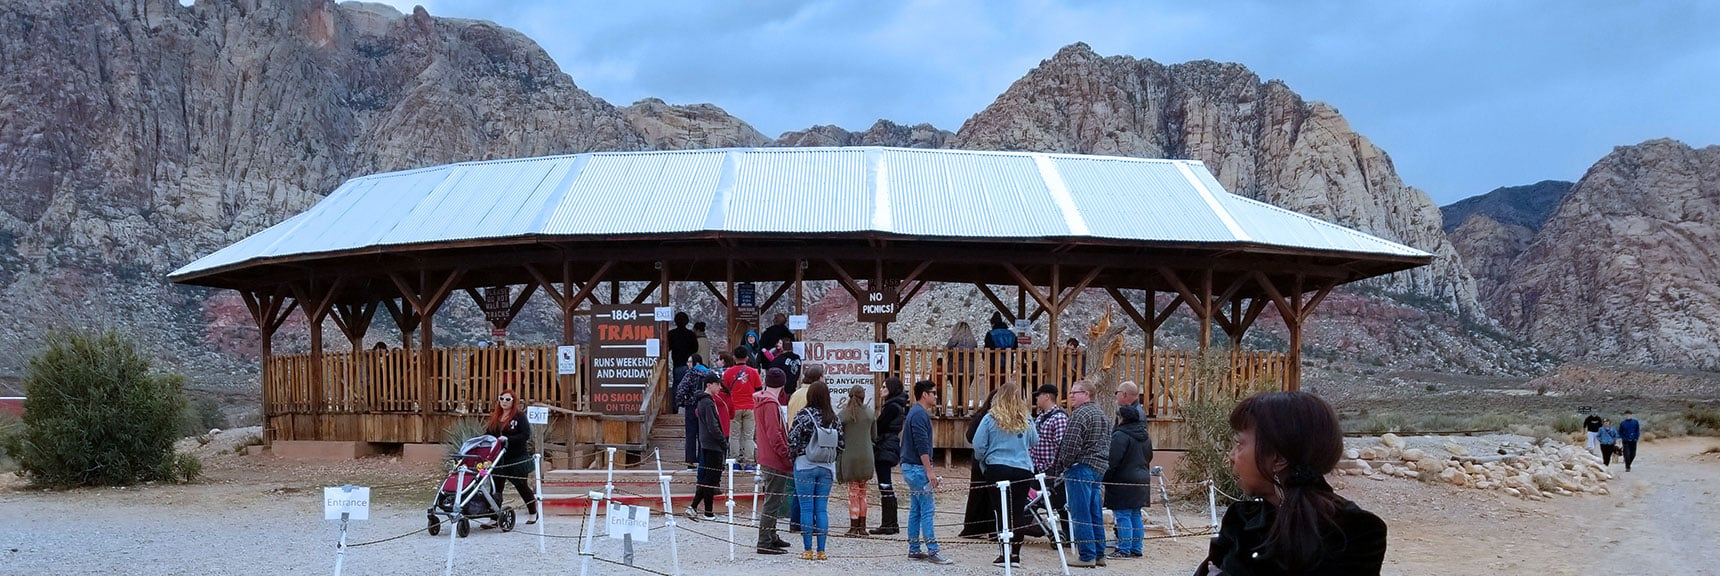 Lower train station at Bonnie Springs Ranch, Nevada